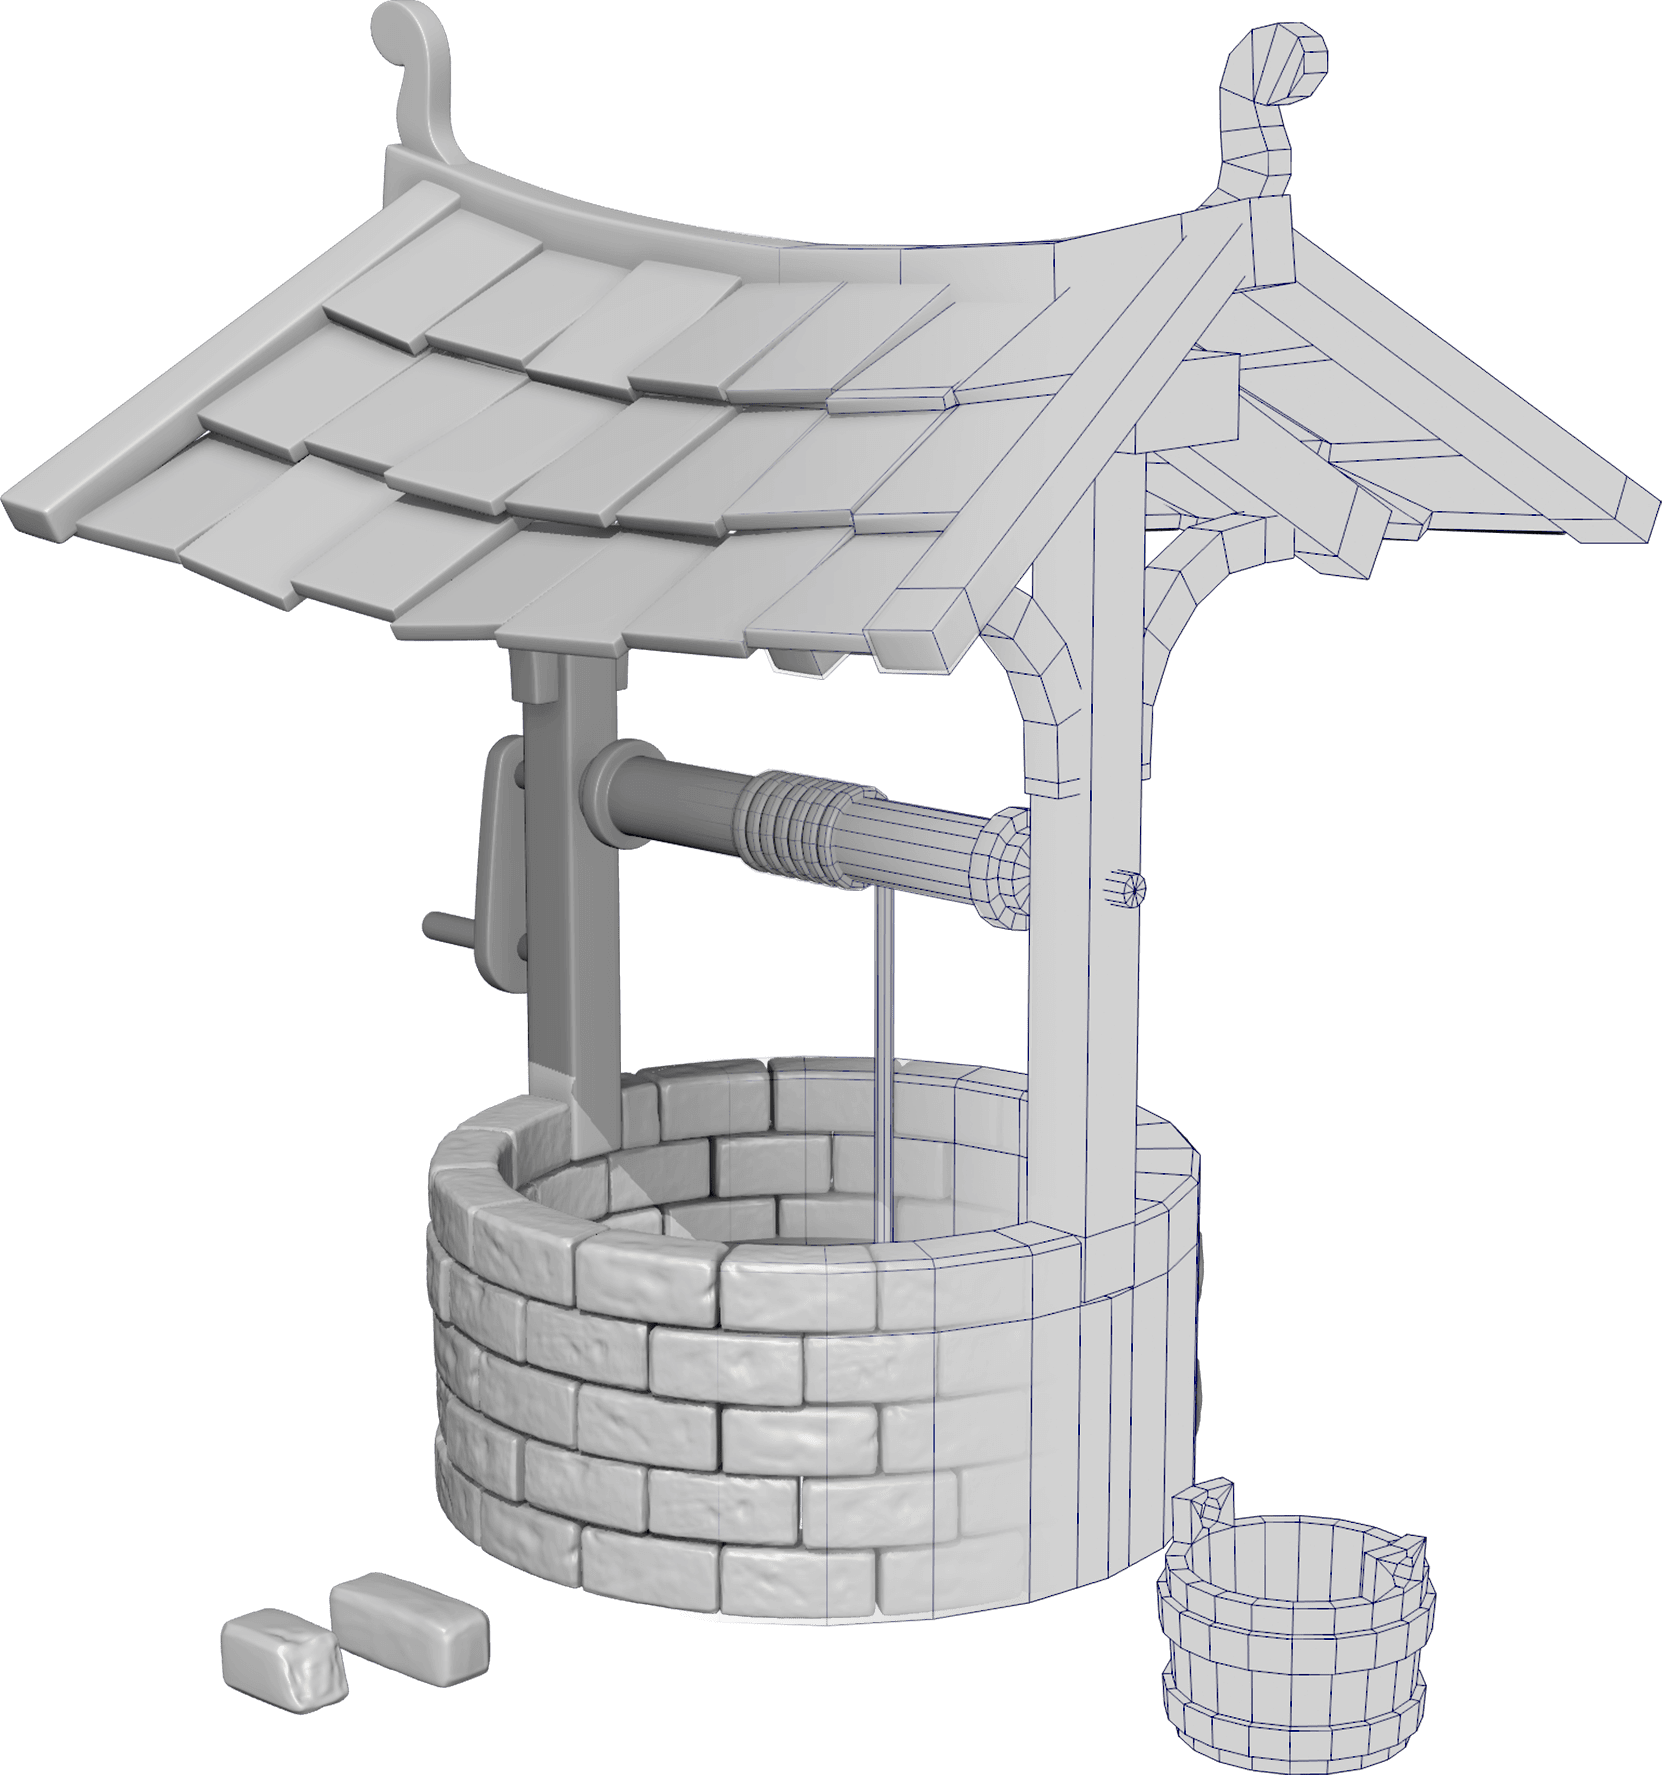 3D Modeling Environment